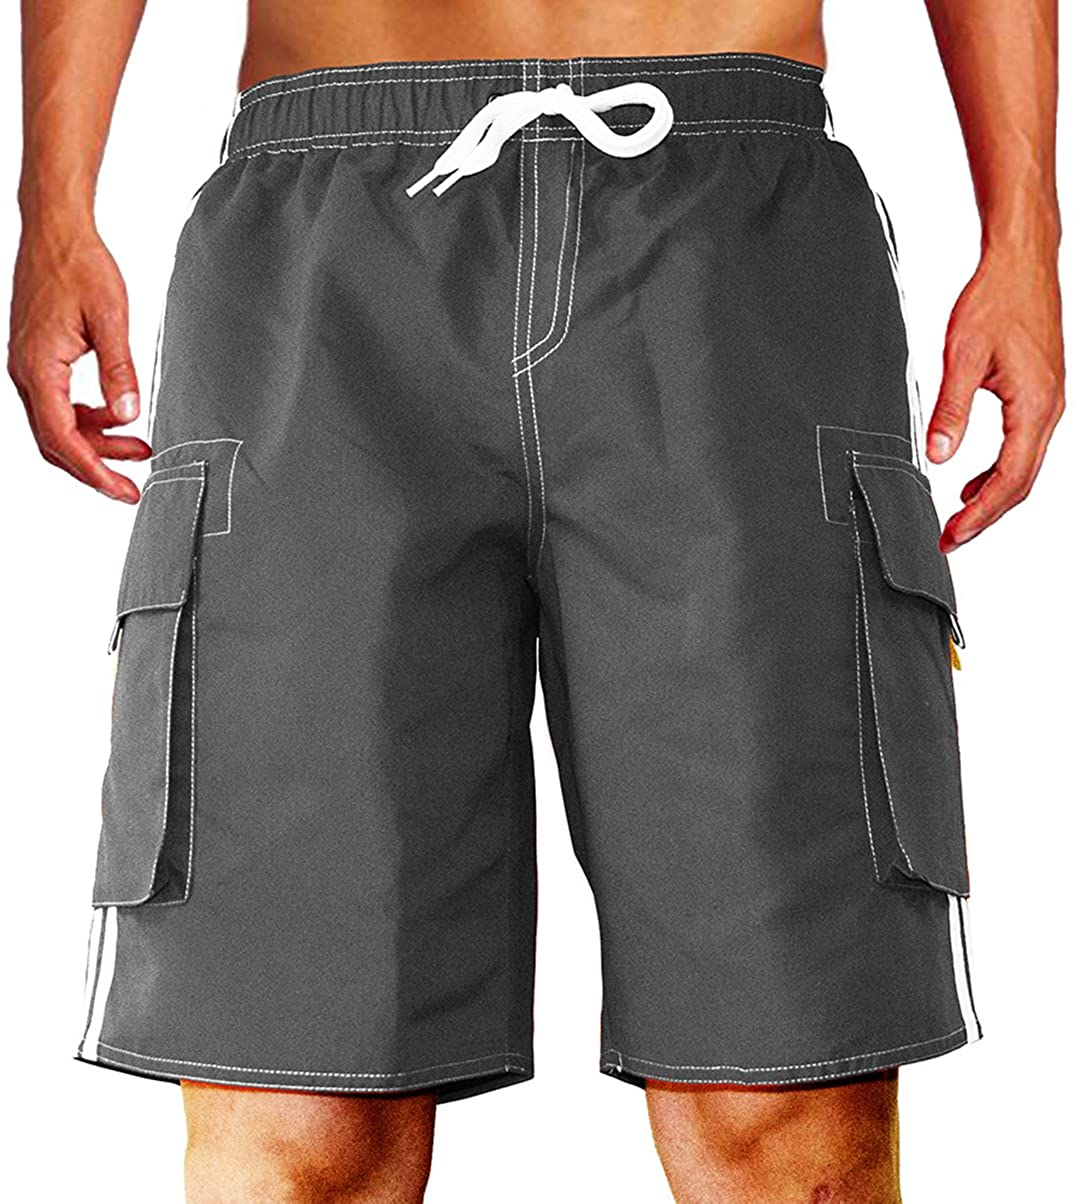 Dwar Mens Swim Trunks Beach Shorts with Mesh Lining with Cargo Pockets